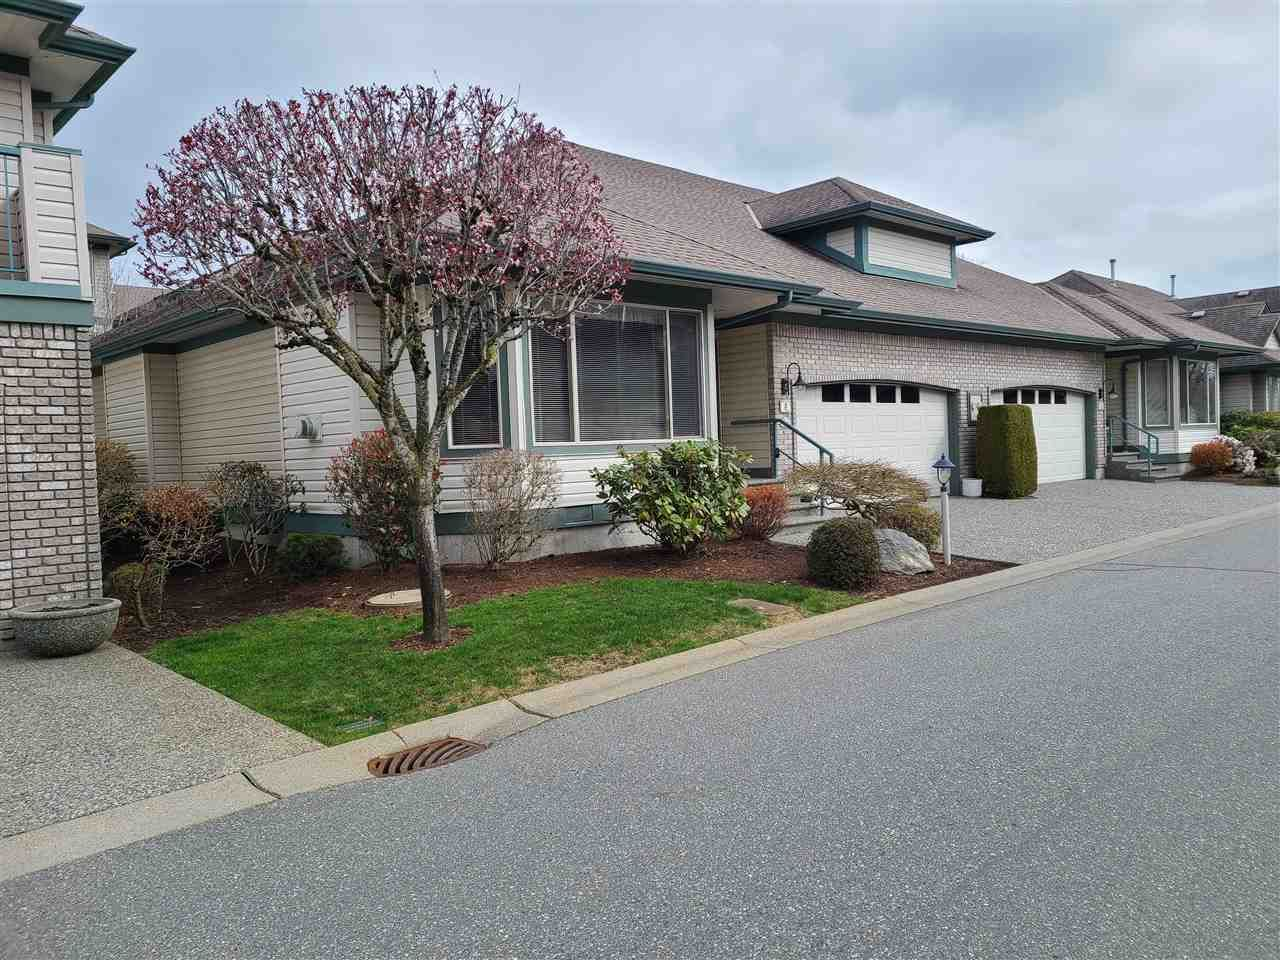 """Main Photo: 5 31517 SPUR Avenue in Abbotsford: Abbotsford West Townhouse for sale in """"View Pointe Properties"""" : MLS®# R2559389"""